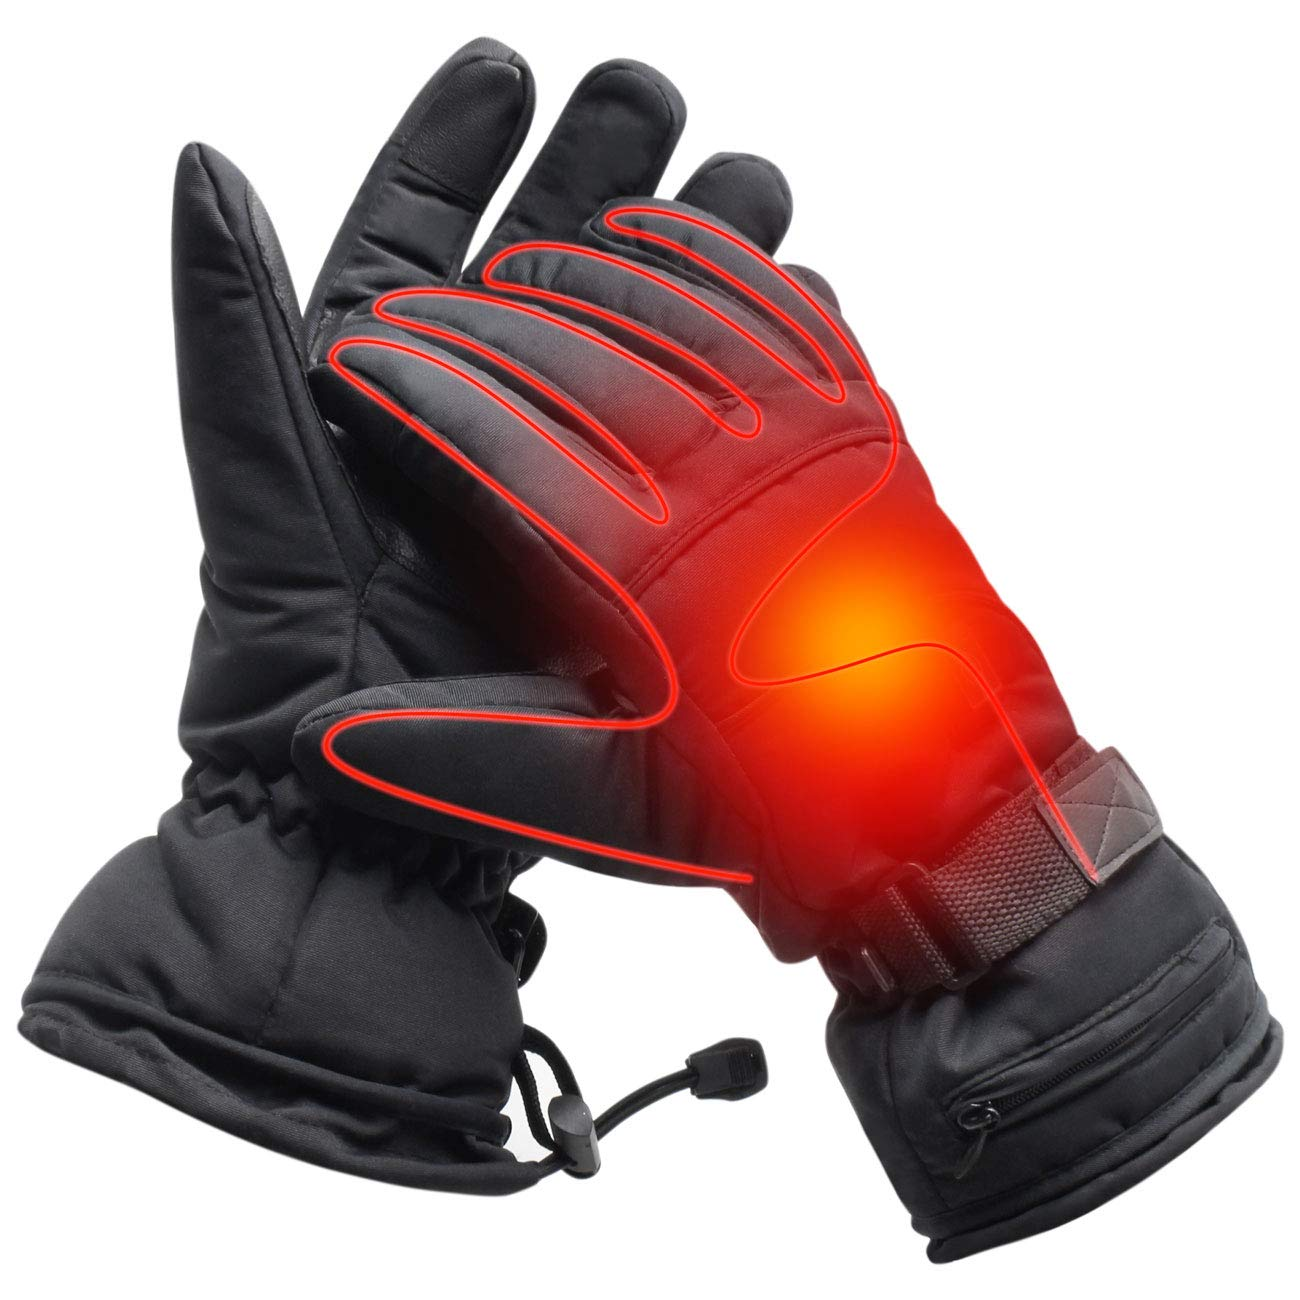 Men Electric Heated Gloves Windproof Winter Warm 3.7V Rechargeable Battery Operated Heated Gloves for Men Women Perfect for Indoor Outdoor Activities Fishing/Hiking/Sleeping(Black-with Button) by MMlove